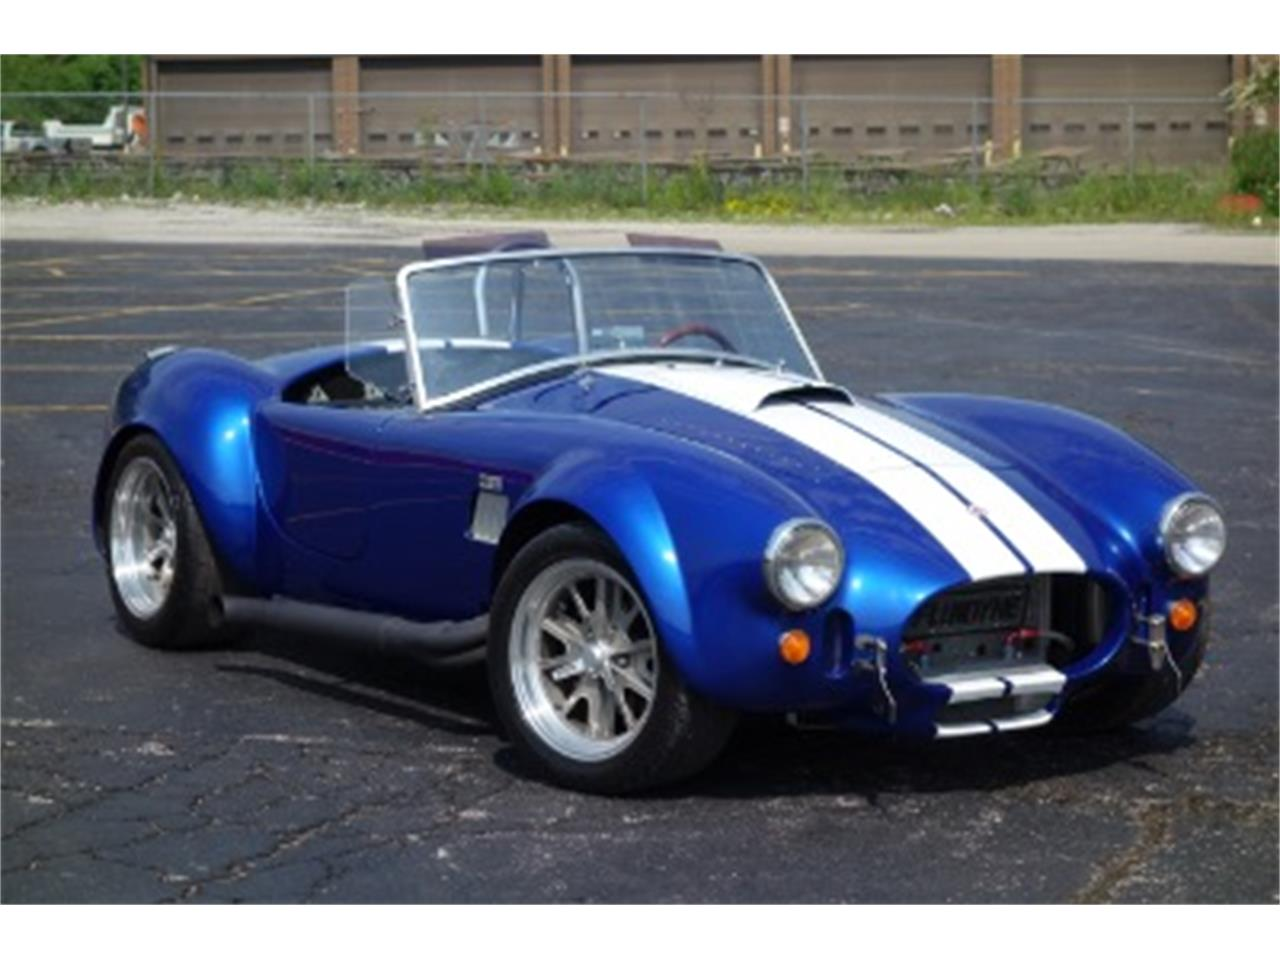 Large picture of 65 cobra nlau